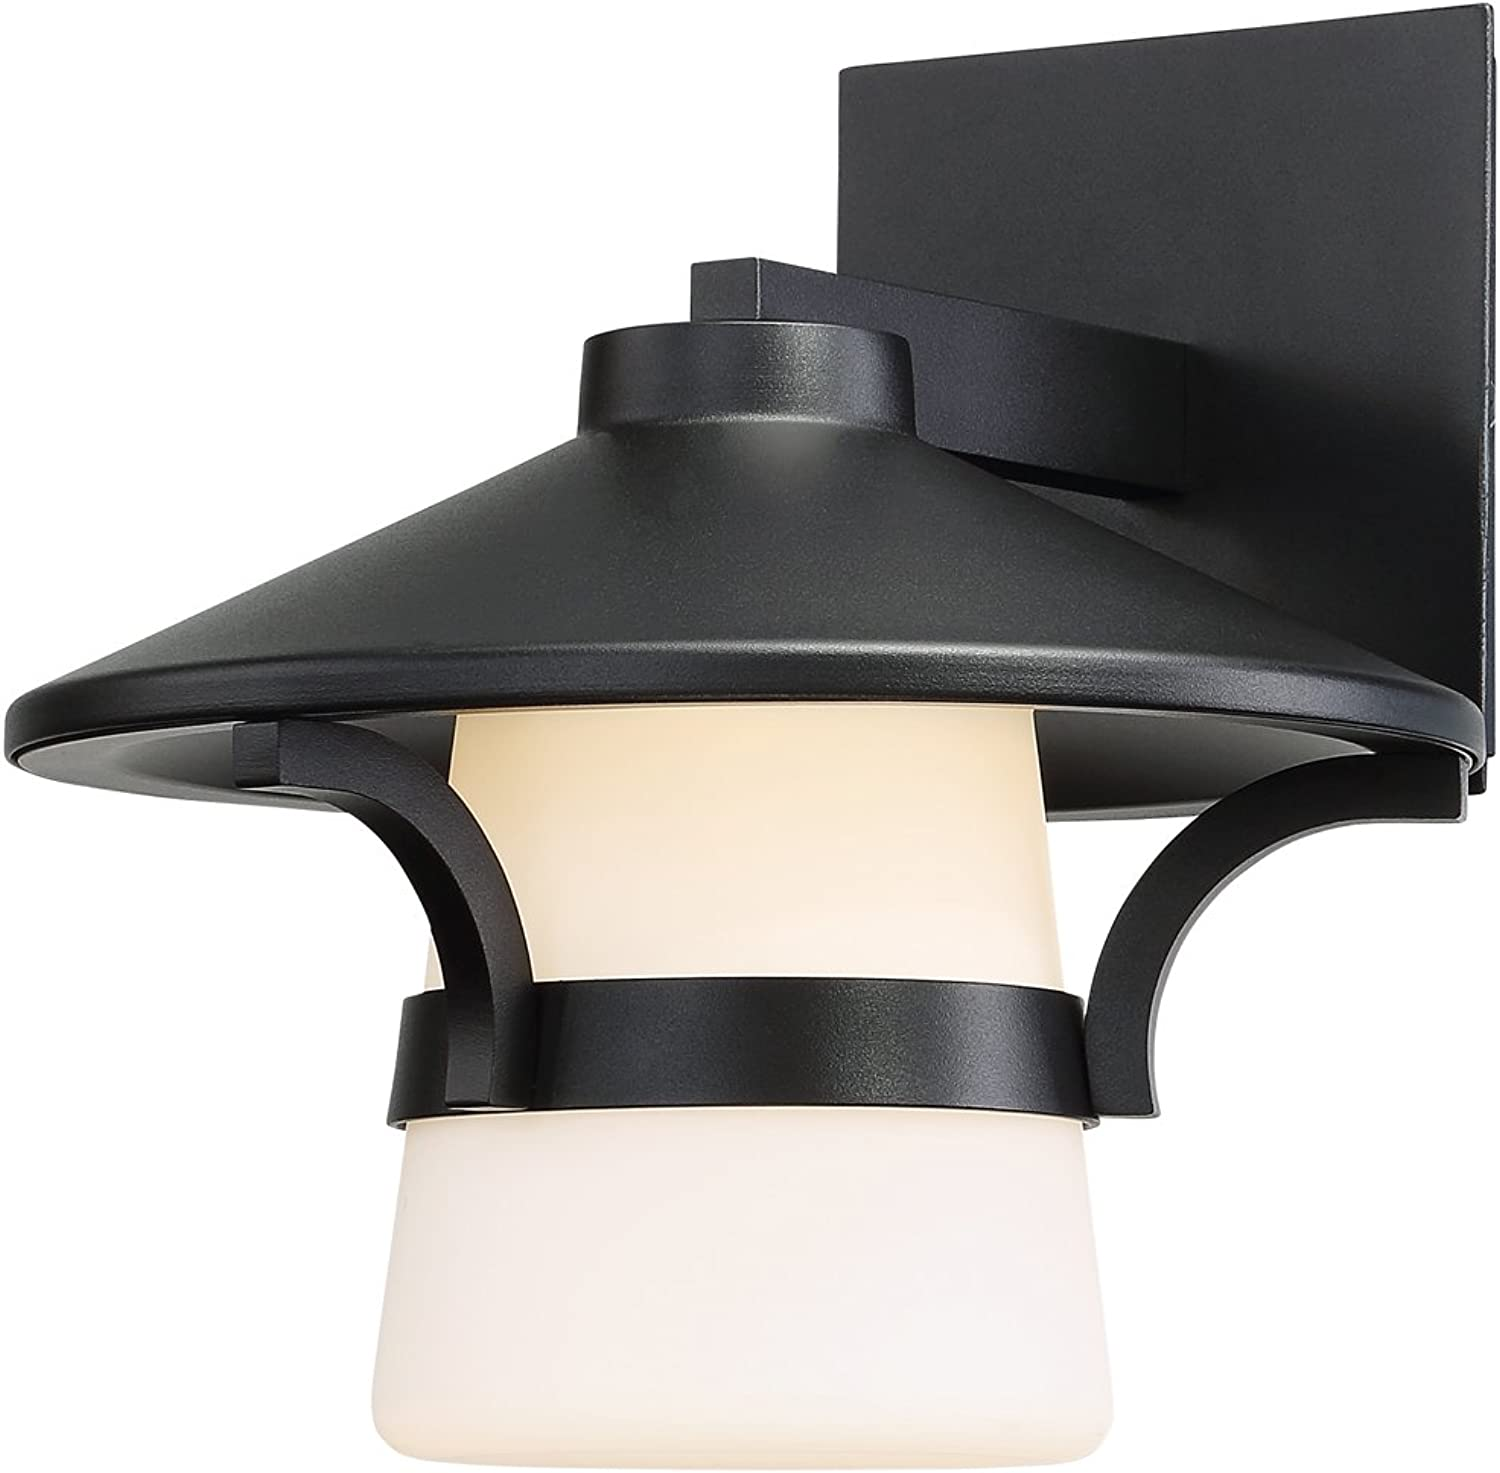 WAC Lighting WS-W48709-BK Abode 9  LED Outdoor Wall Light in Black 9 Inches